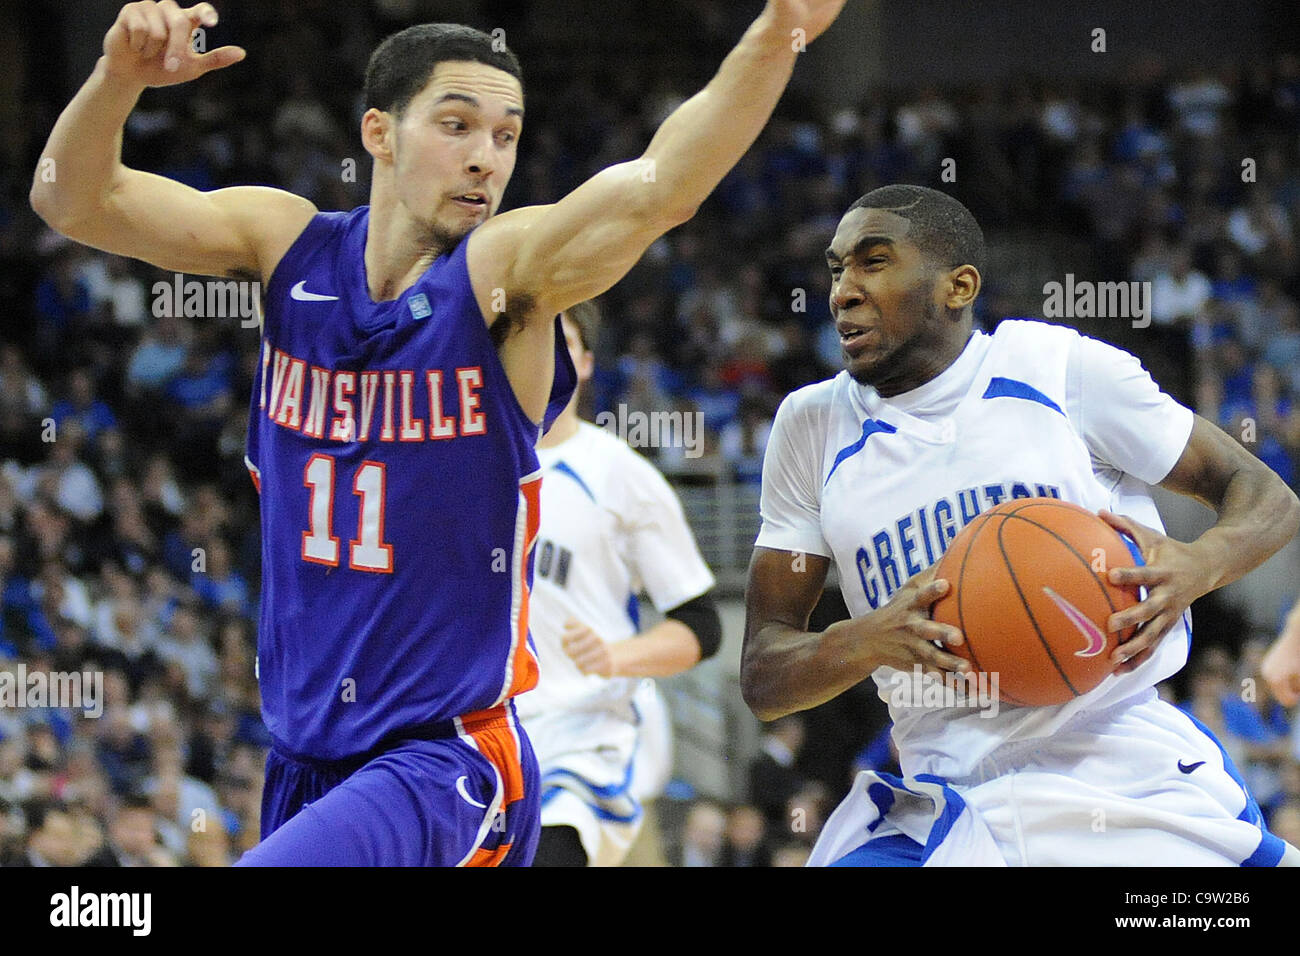 Feb. 21, 2012 - Omaha, Nebraska, U.S - Creighton guard Jahenns Manigat (12) drives around Evansville guard Colt - Stock Image